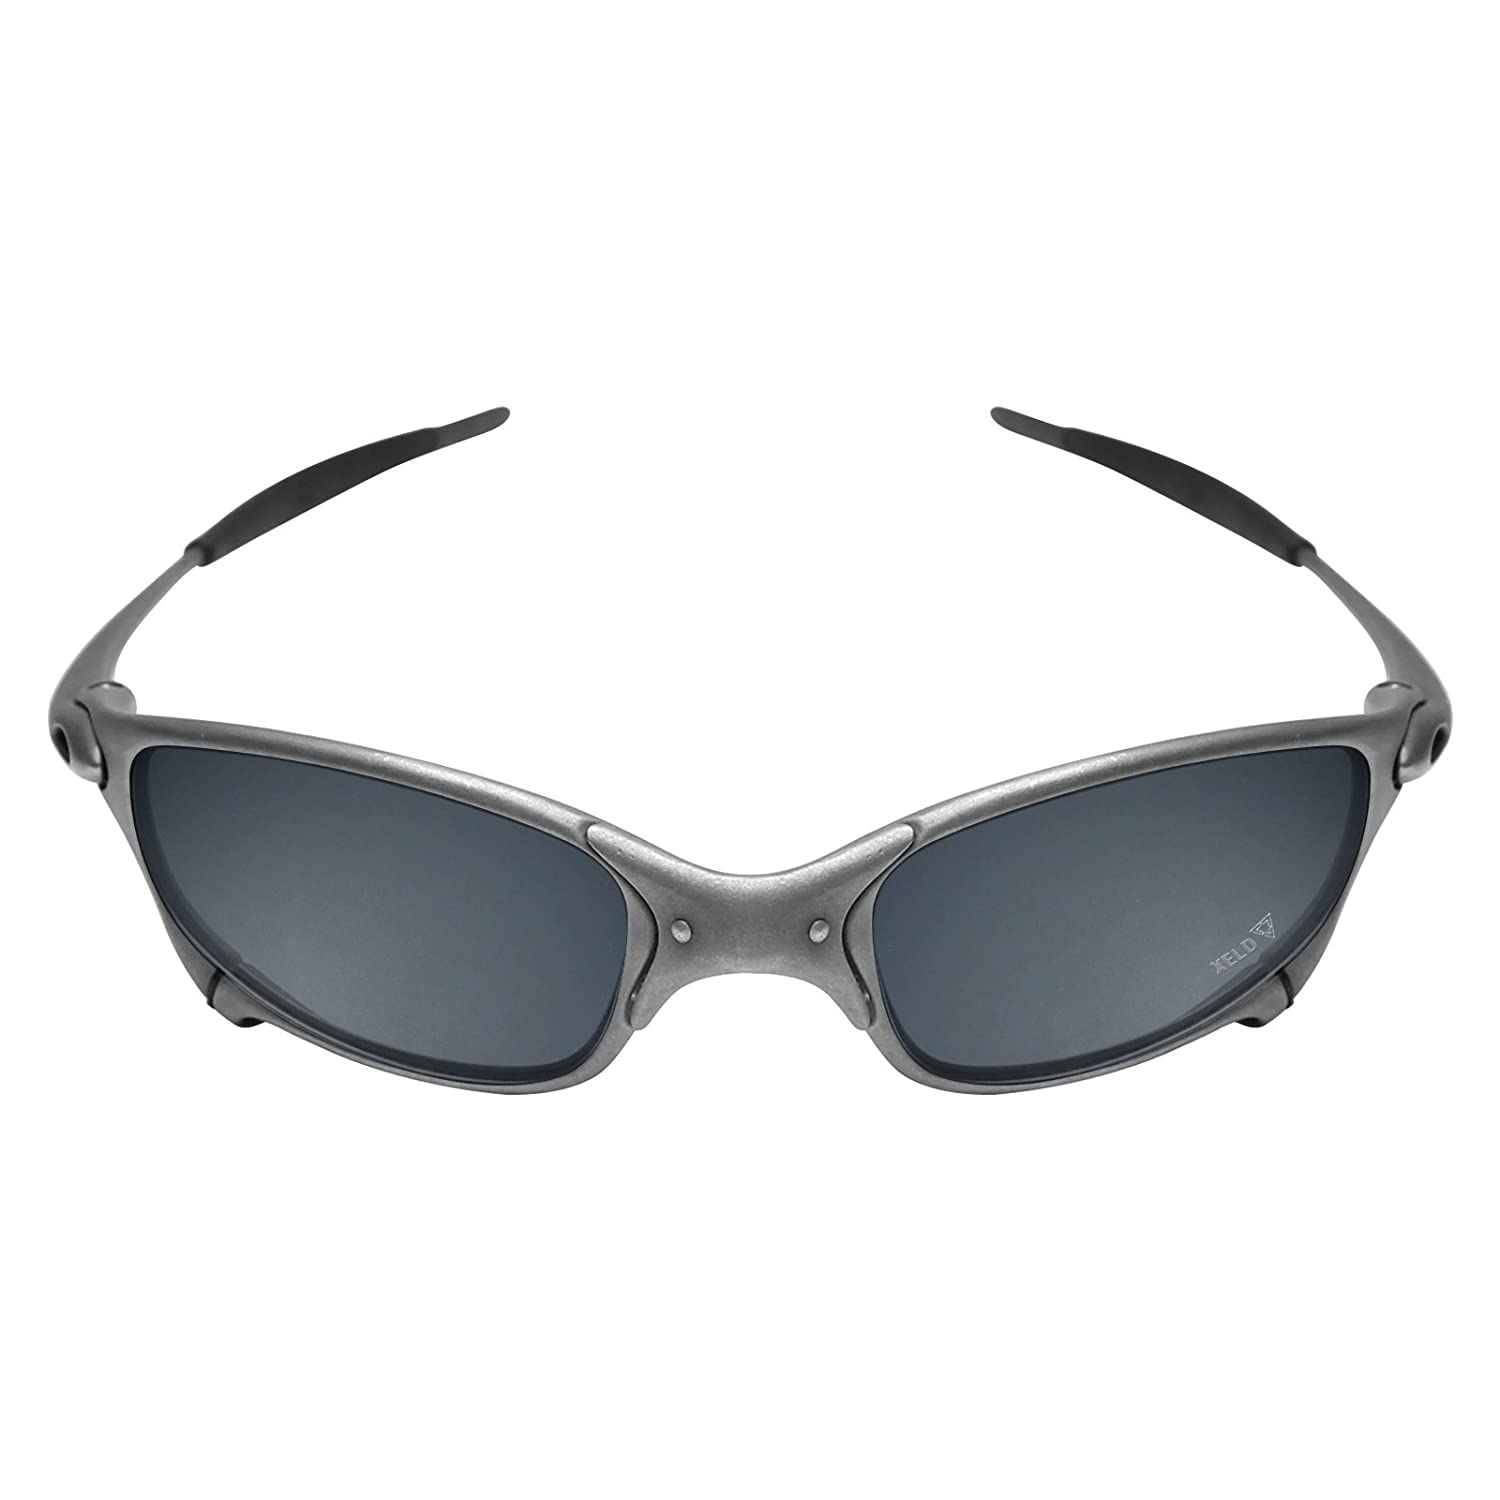 Mryok Replacement Lenses for Oakley Juliet - Options MryLens OY067JHC03SC  larger image ff2e801eab